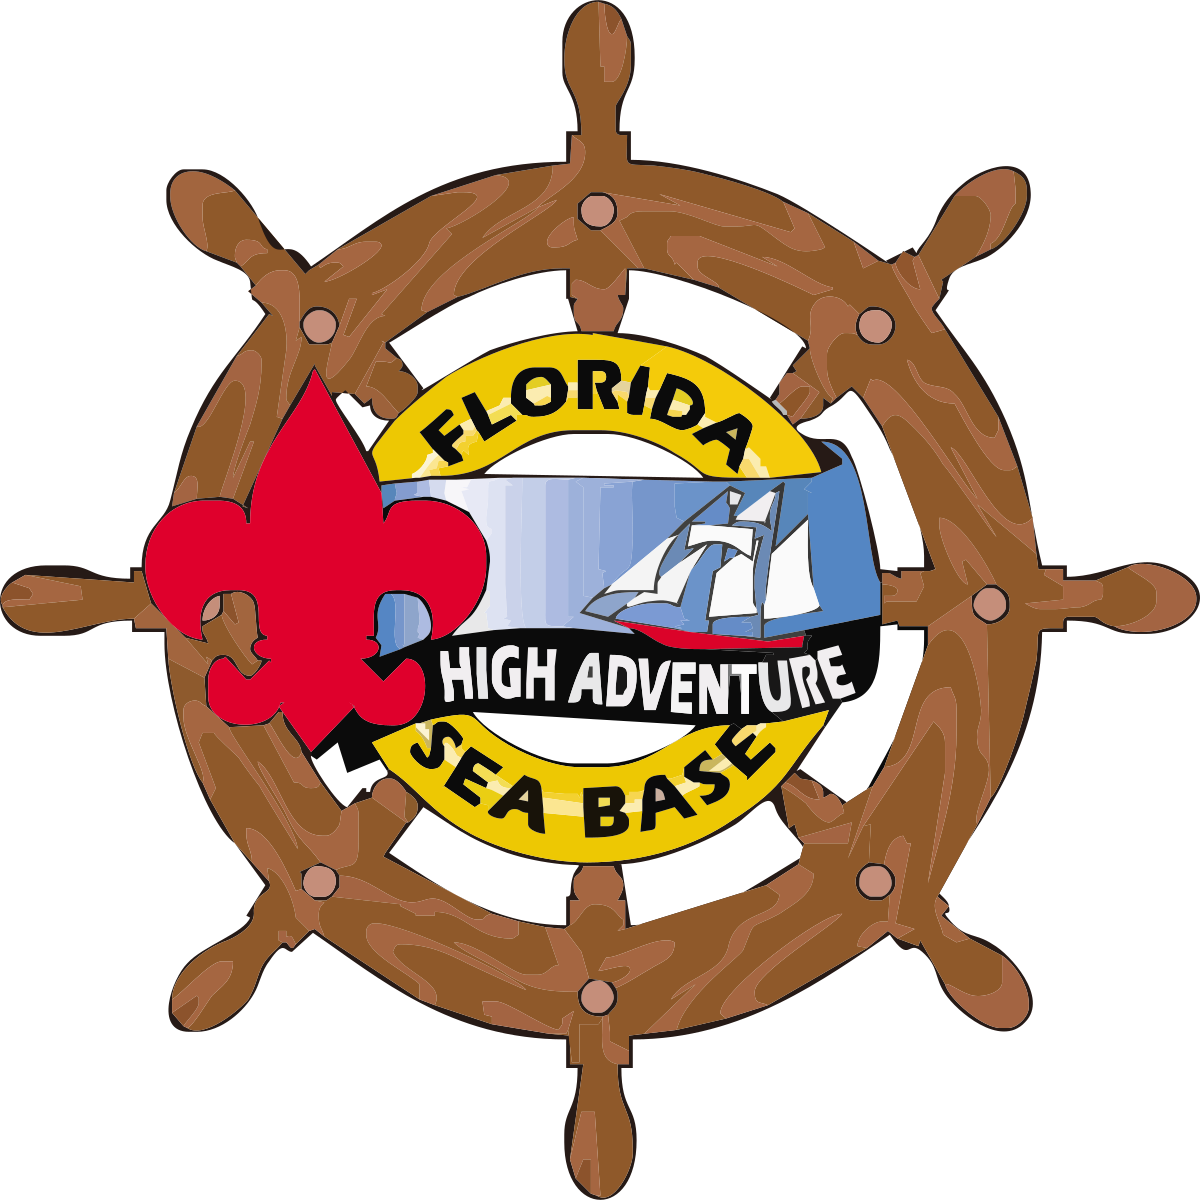 Florida national high adventure. Pathway clipart rainbow